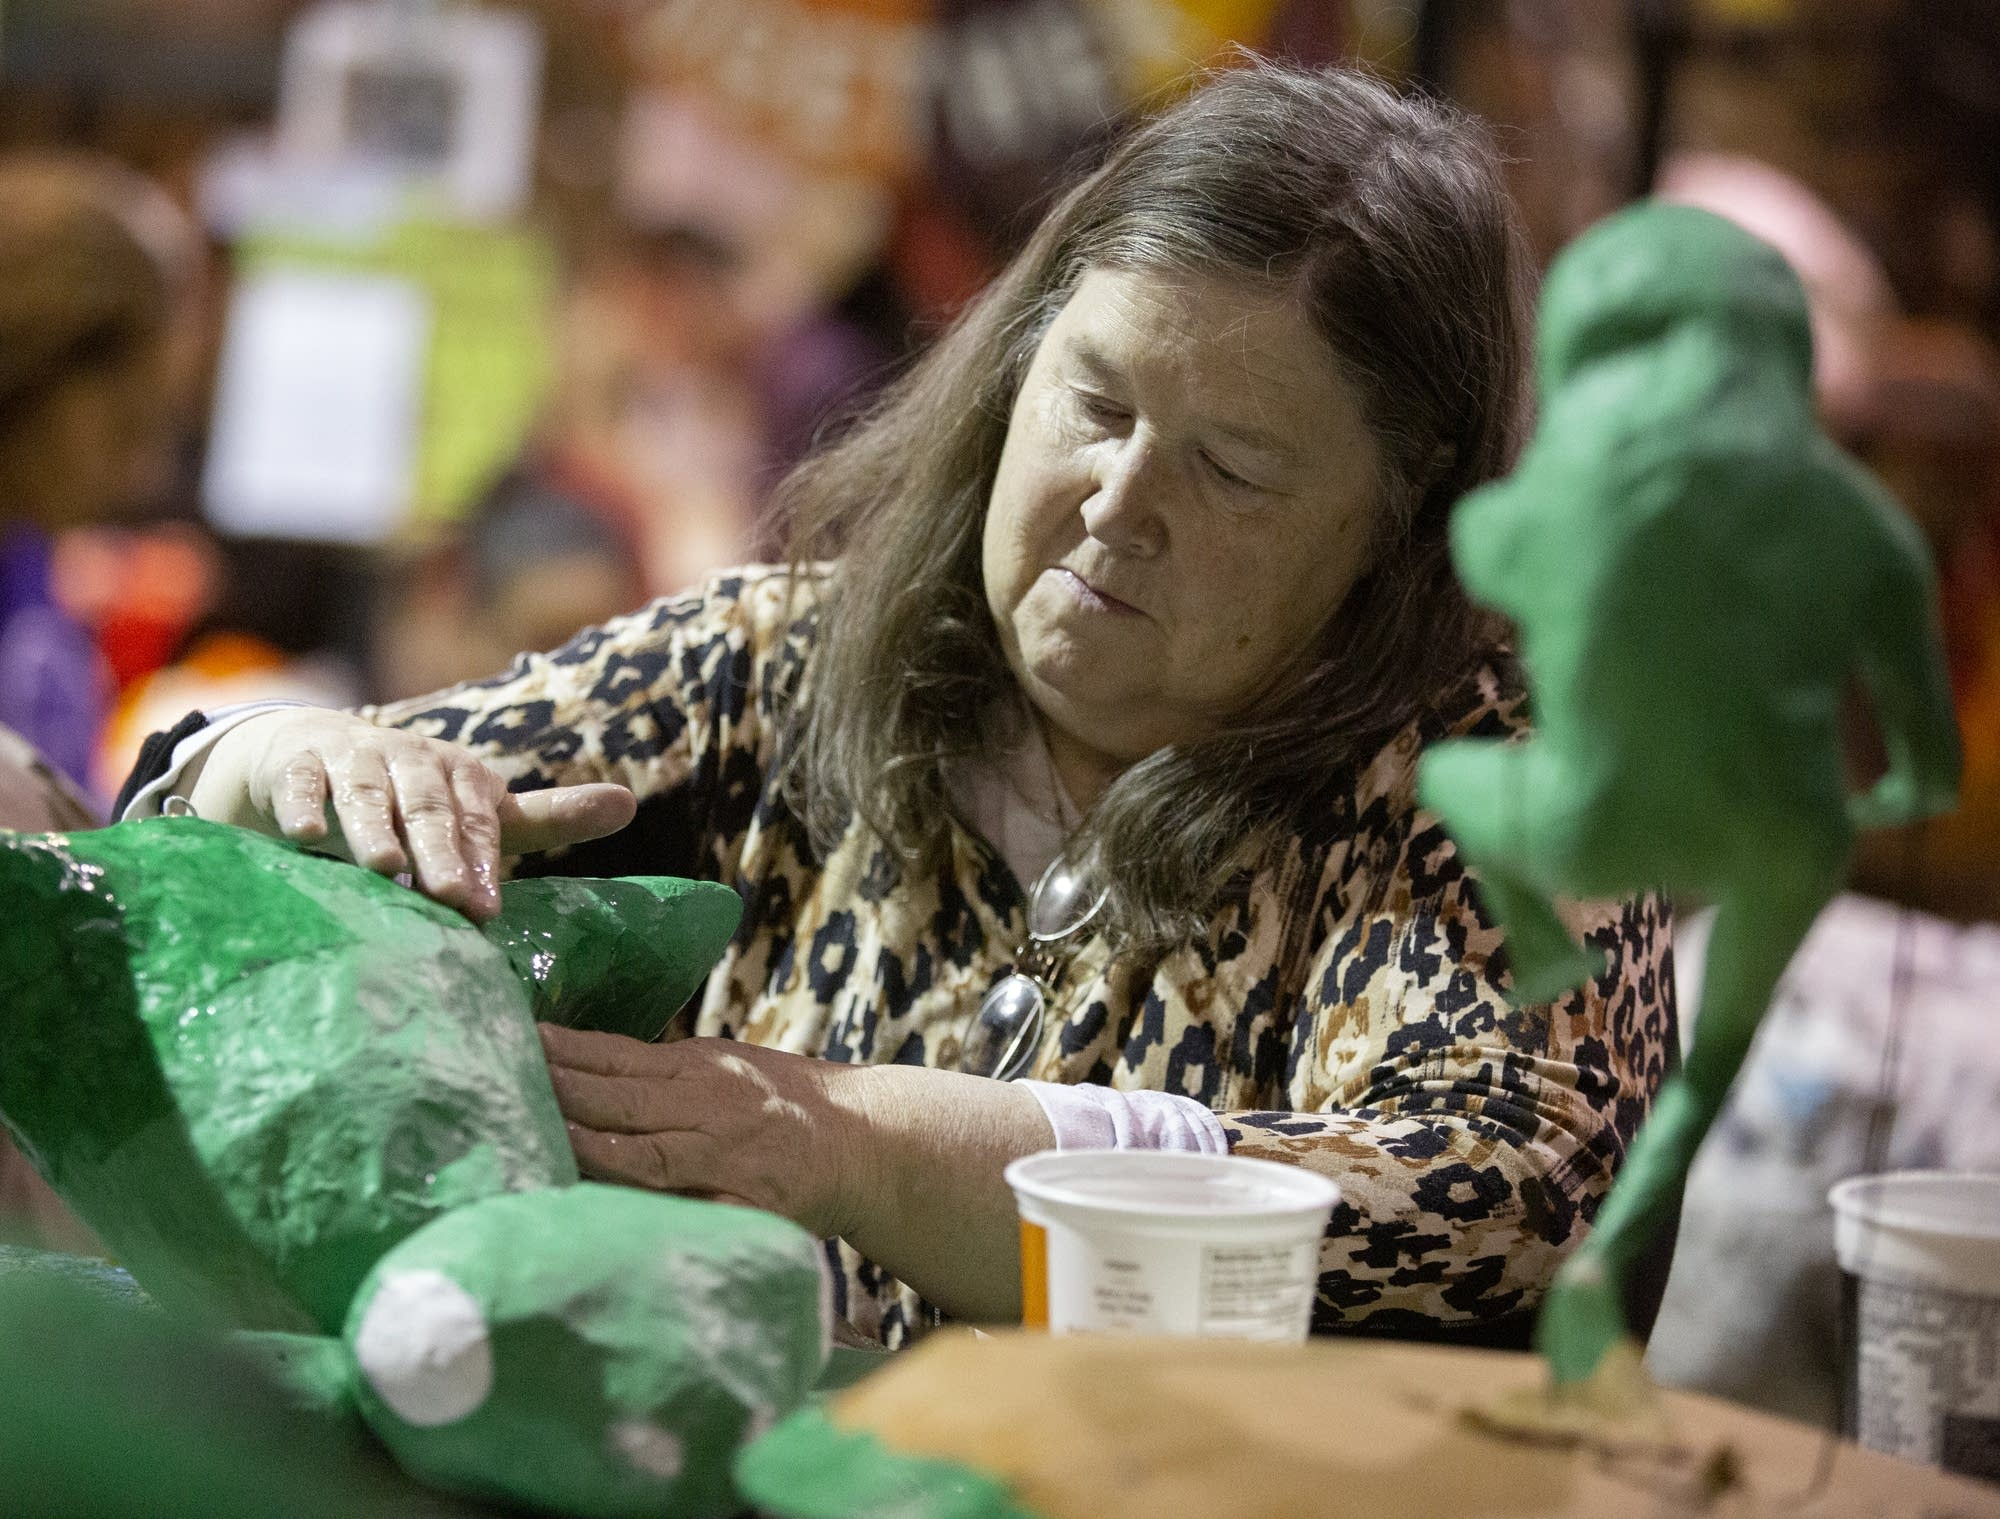 Nell Nere of St. Paul patches up a paper mache frog puppet.